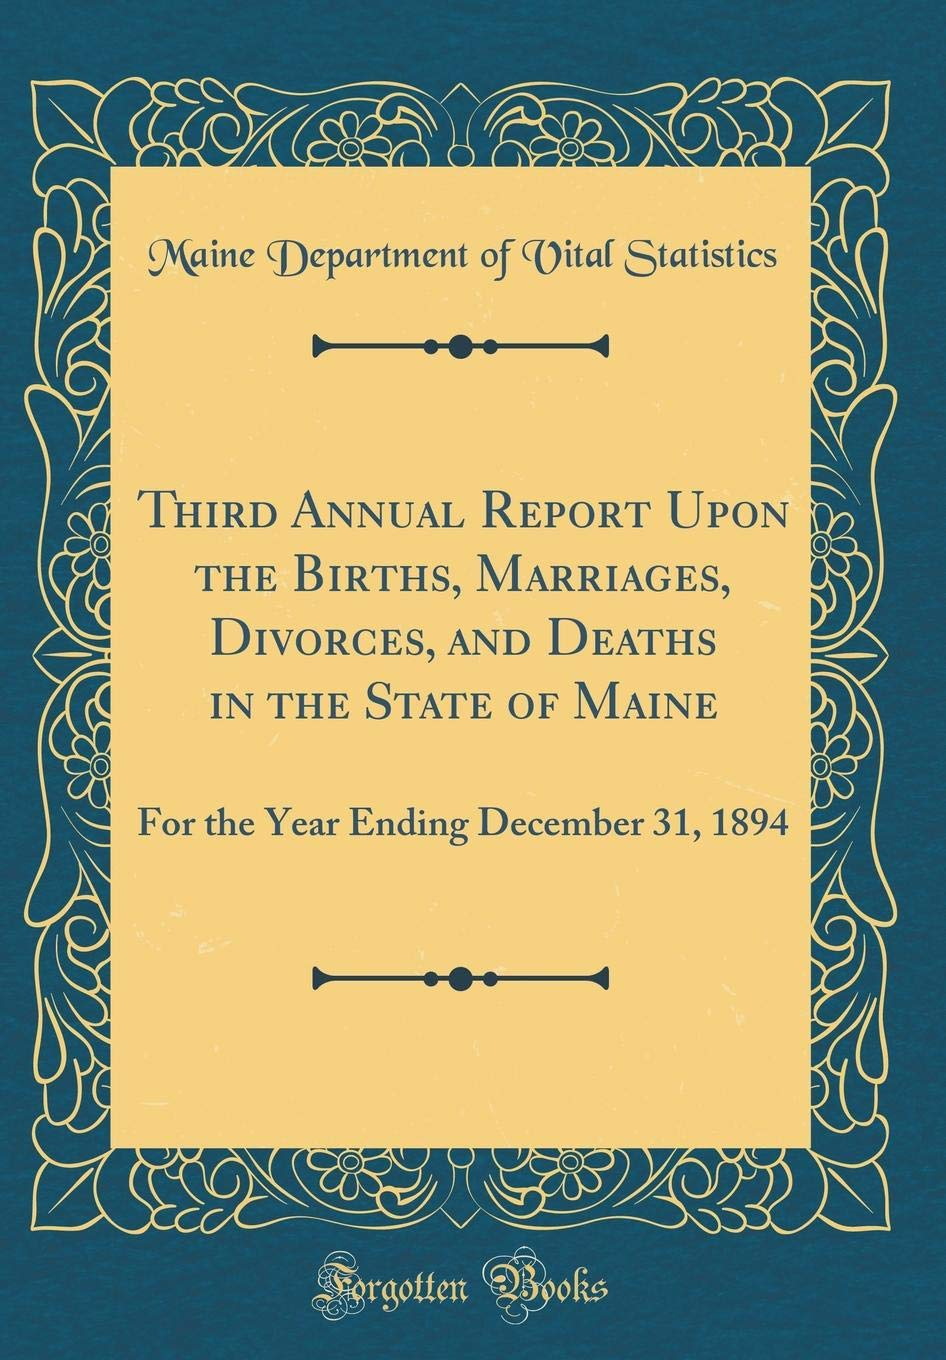 Download Third Annual Report Upon the Births, Marriages, Divorces, and Deaths in the State of Maine: For the Year Ending December 31, 1894 (Classic Reprint) PDF